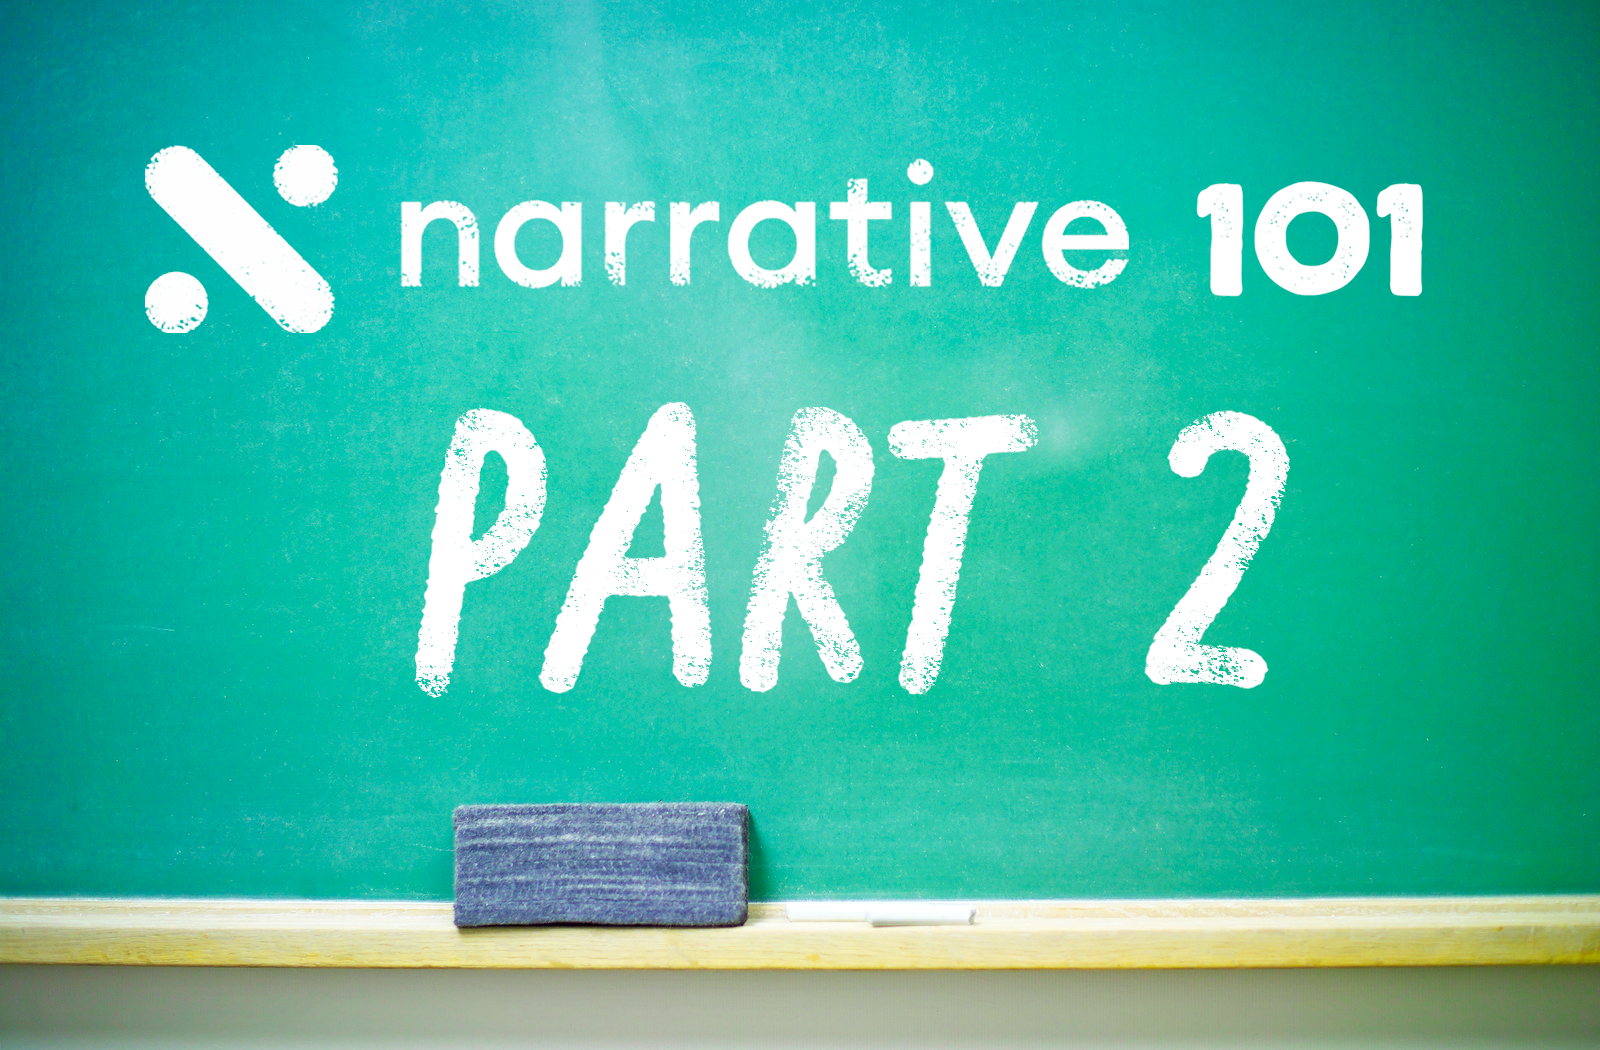 Narrative 101: How Are Companies Using Narrative?